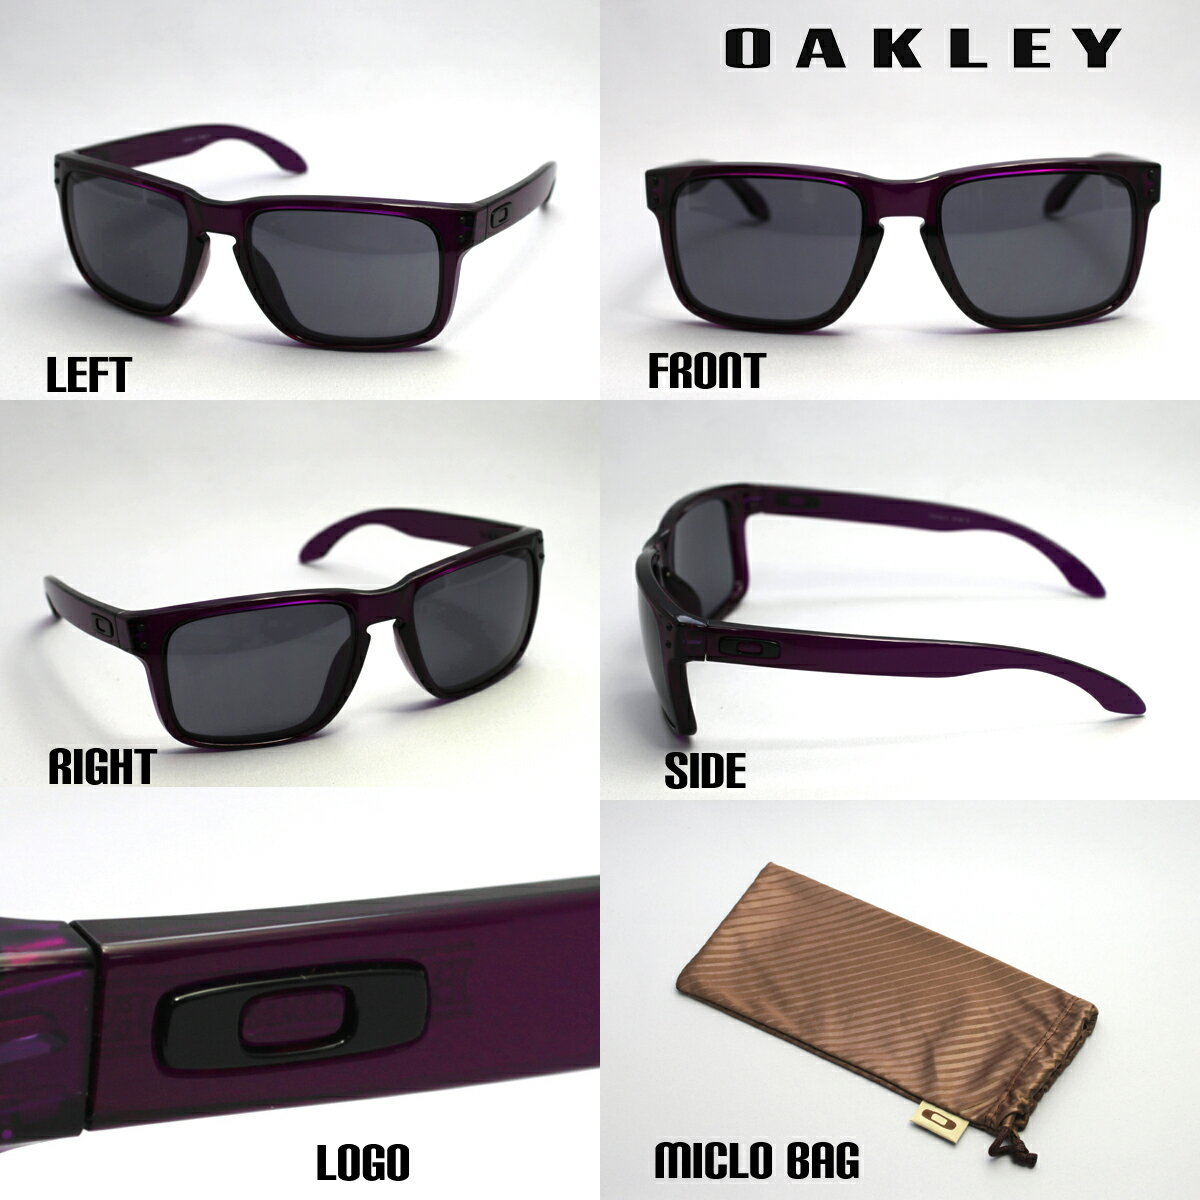 a78fb06107 Oakley Sunglasses Buy Online Nz « Heritage Malta